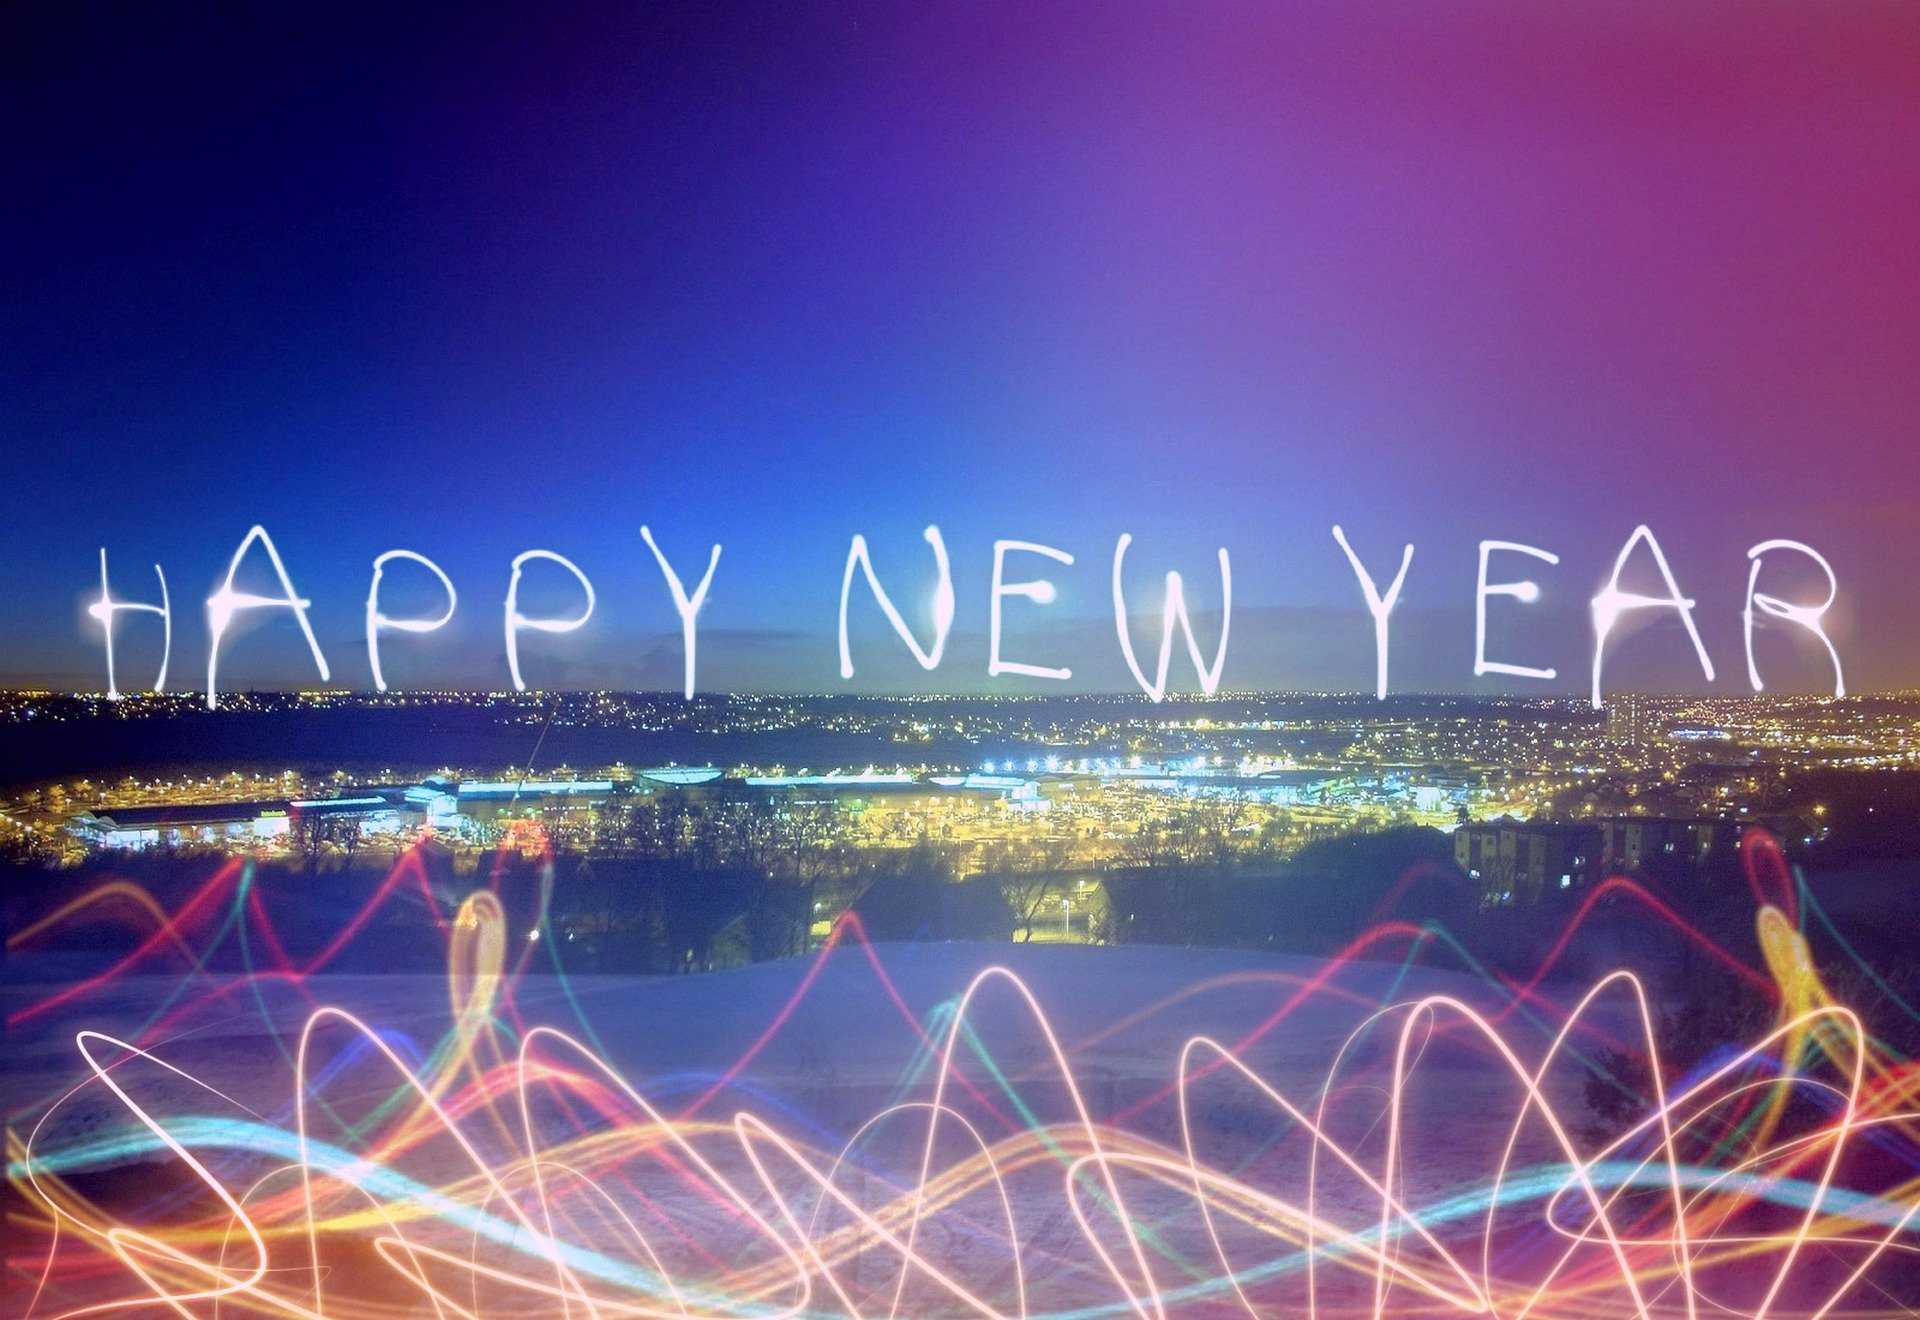 Happy New Year EDITIVE